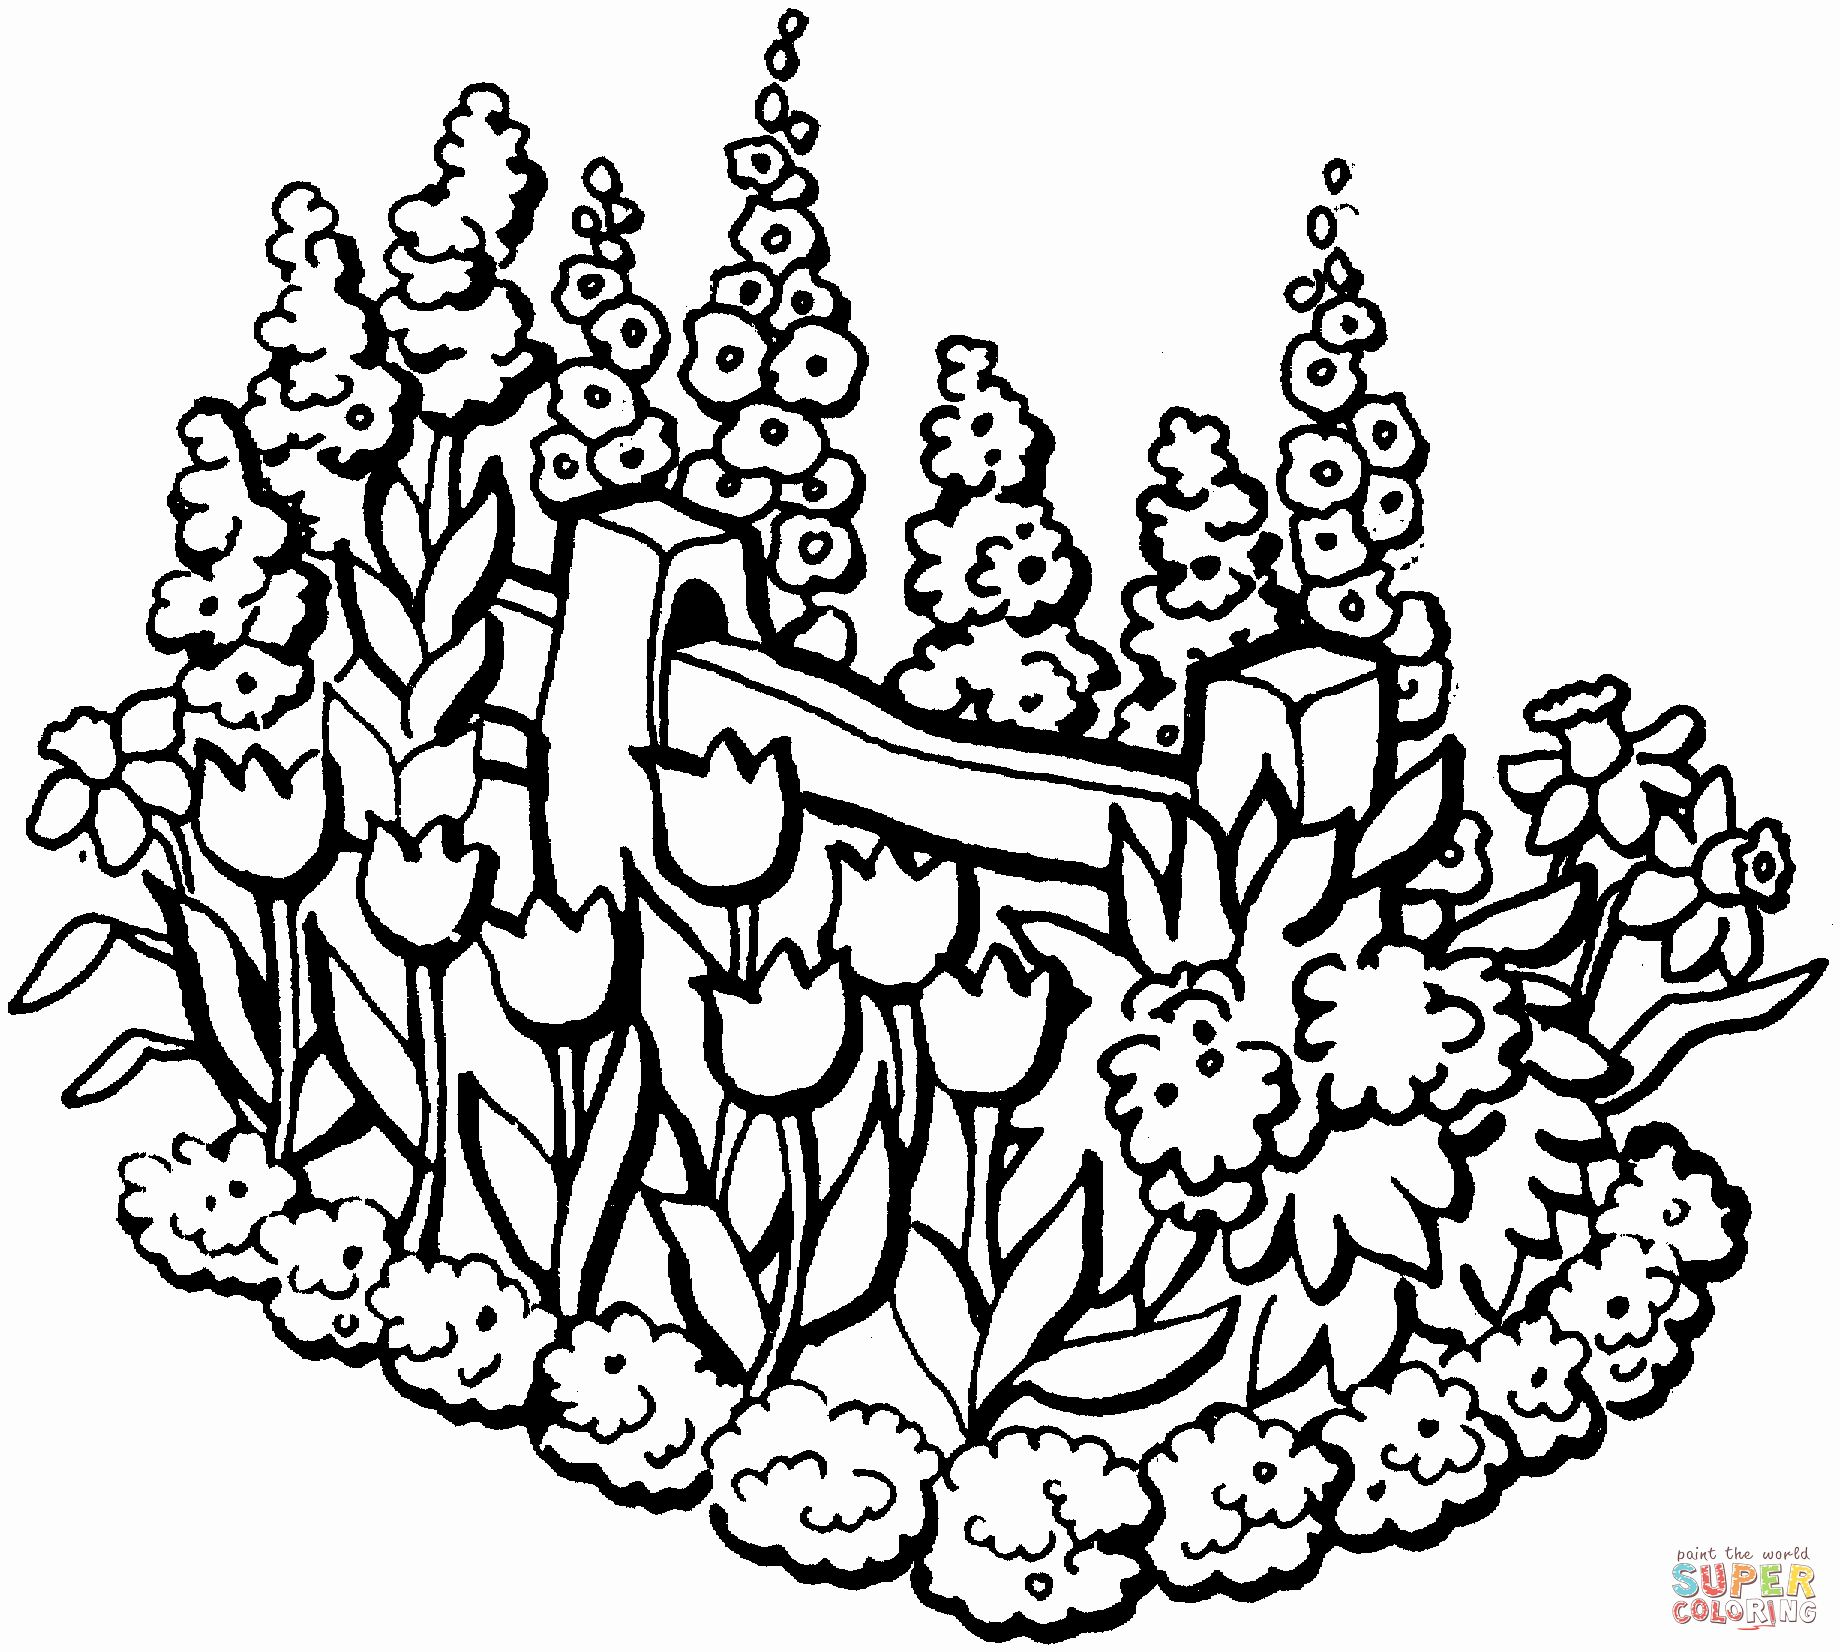 Flower Garden Coloring Pages Printable Inspirational Beautiful Garden In Summer Coloring Page Garden Coloring Pages Summer Coloring Pages Free Coloring Pages